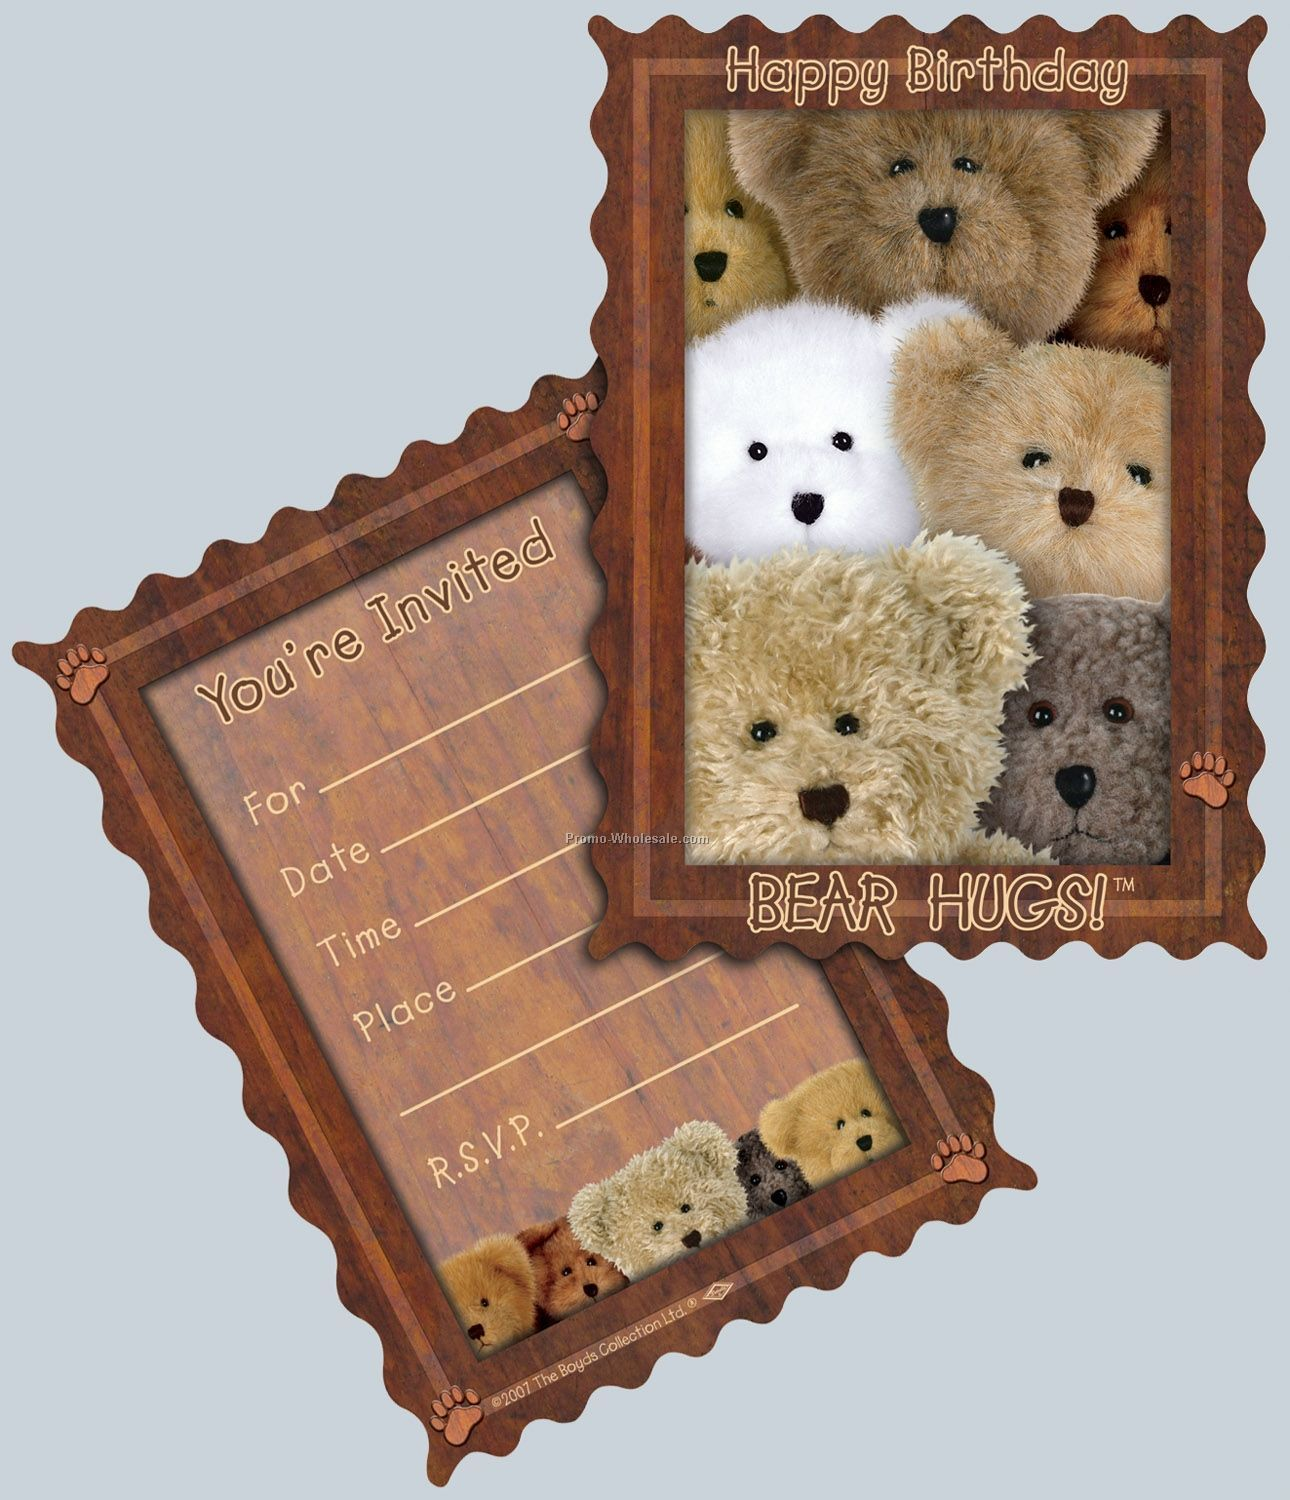 Boyds Bears Birthday Invitations - Bear Hugs